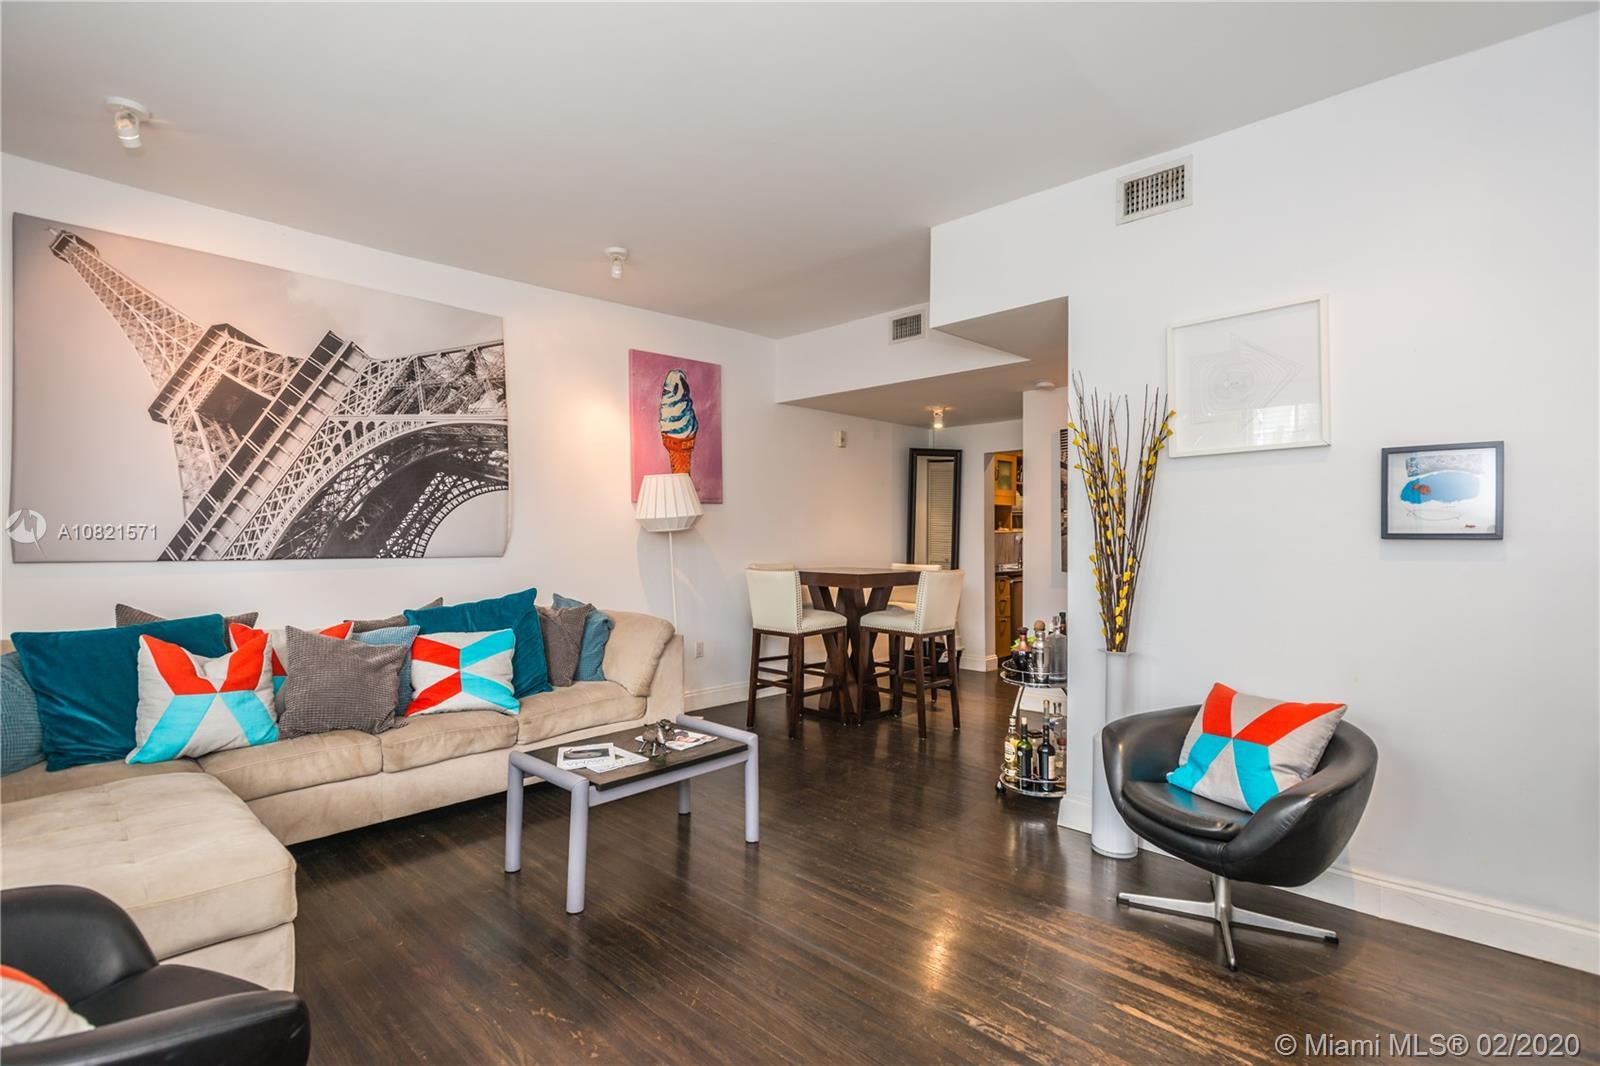 Beautiful Oasis in the heart of South Beach. Upgraded 1 bedroom, 1 bathroom. 750 bright sq. ft. Larg